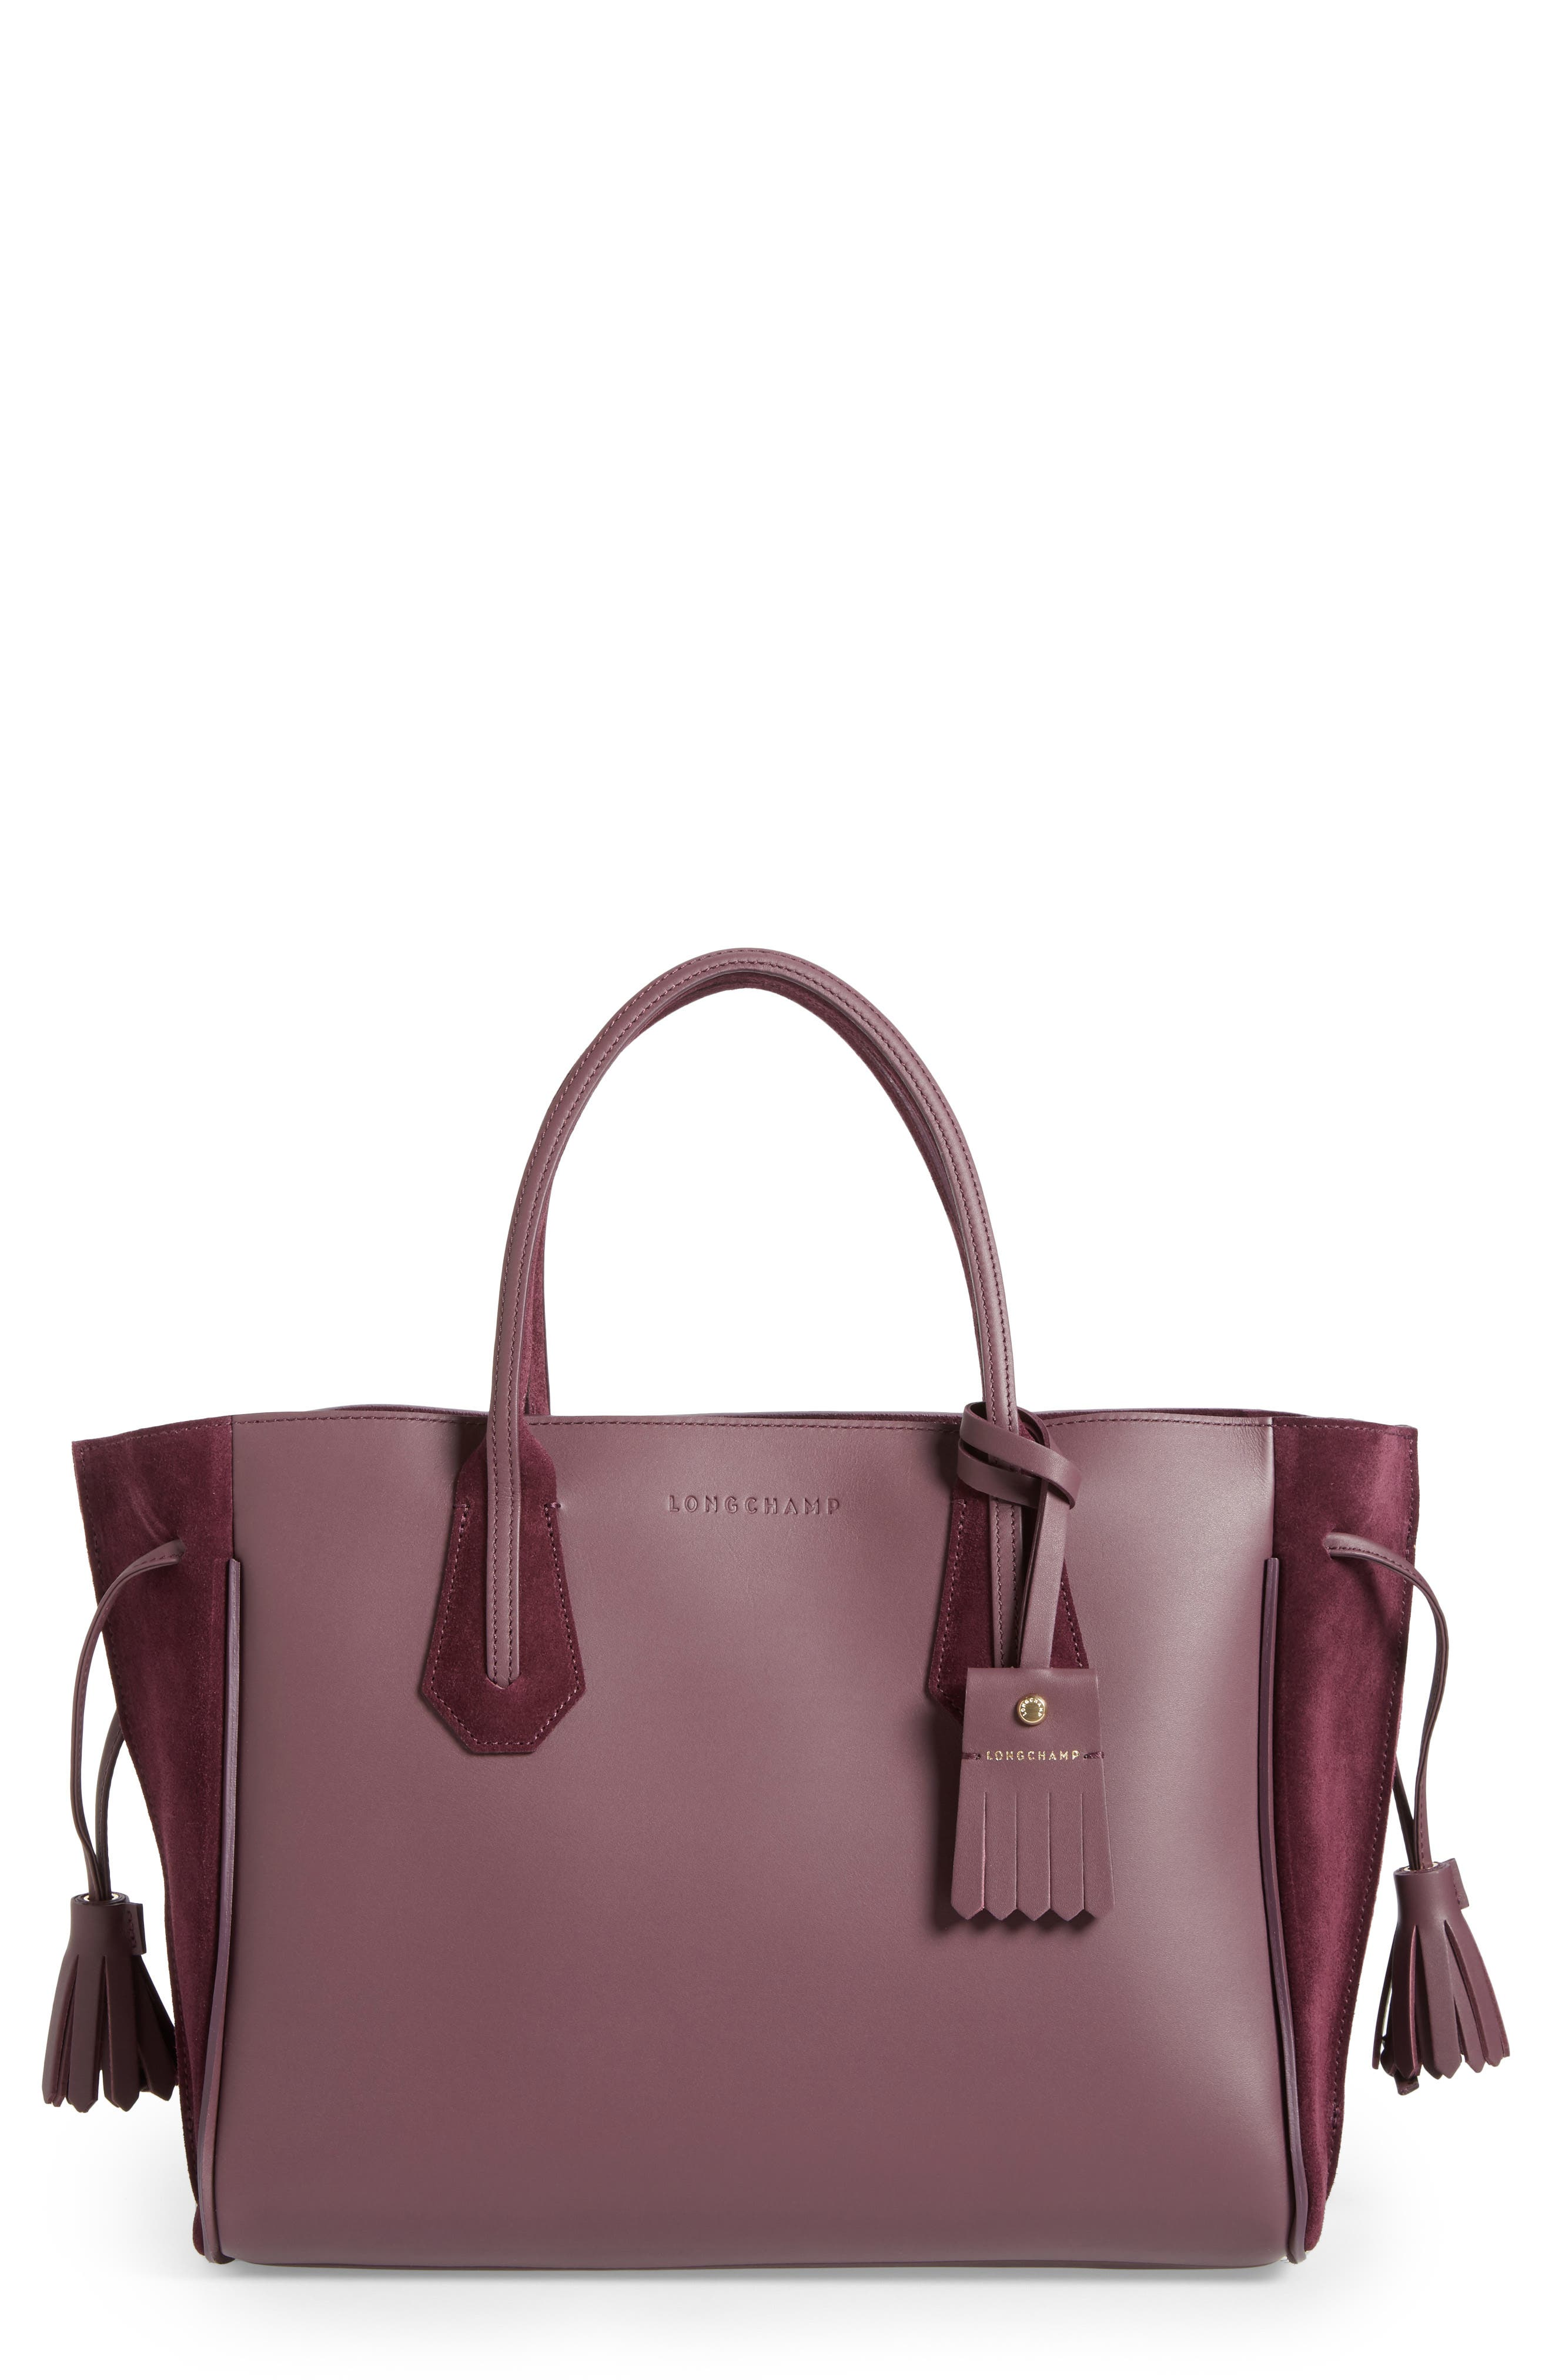 Longchamp Penelope Leather & Suede Top Handle Tote